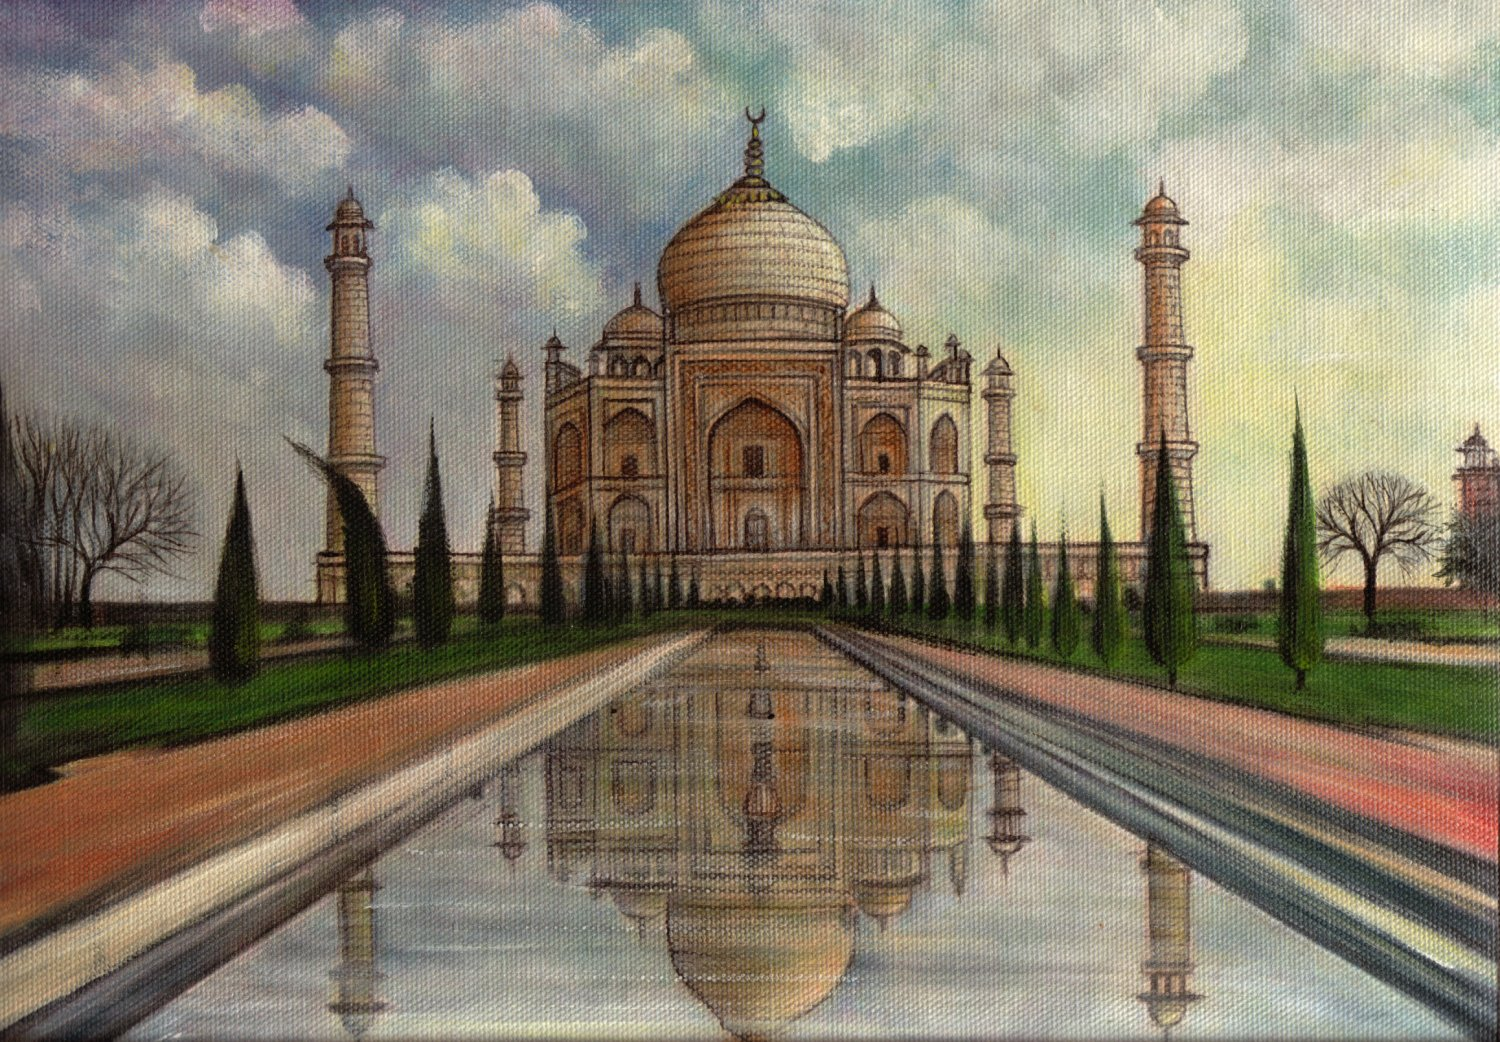 Taj mahal art handmade indian wonder of world mogul for Archaeological monuments in india mural paintings